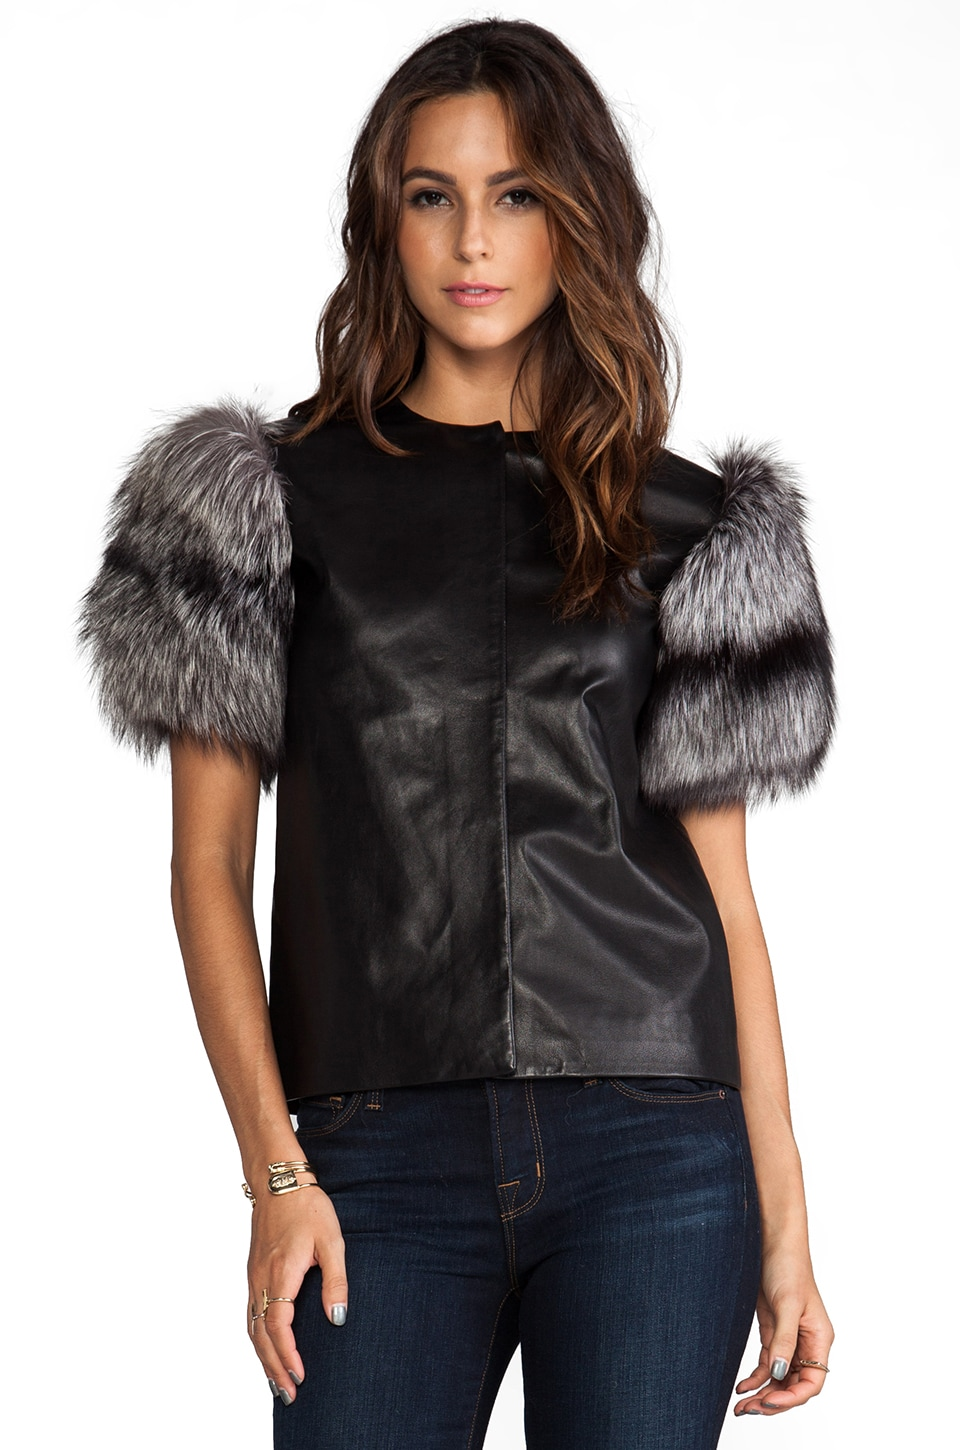 MAX FOWLES Silver Fox Fur Sleeve Top in Black